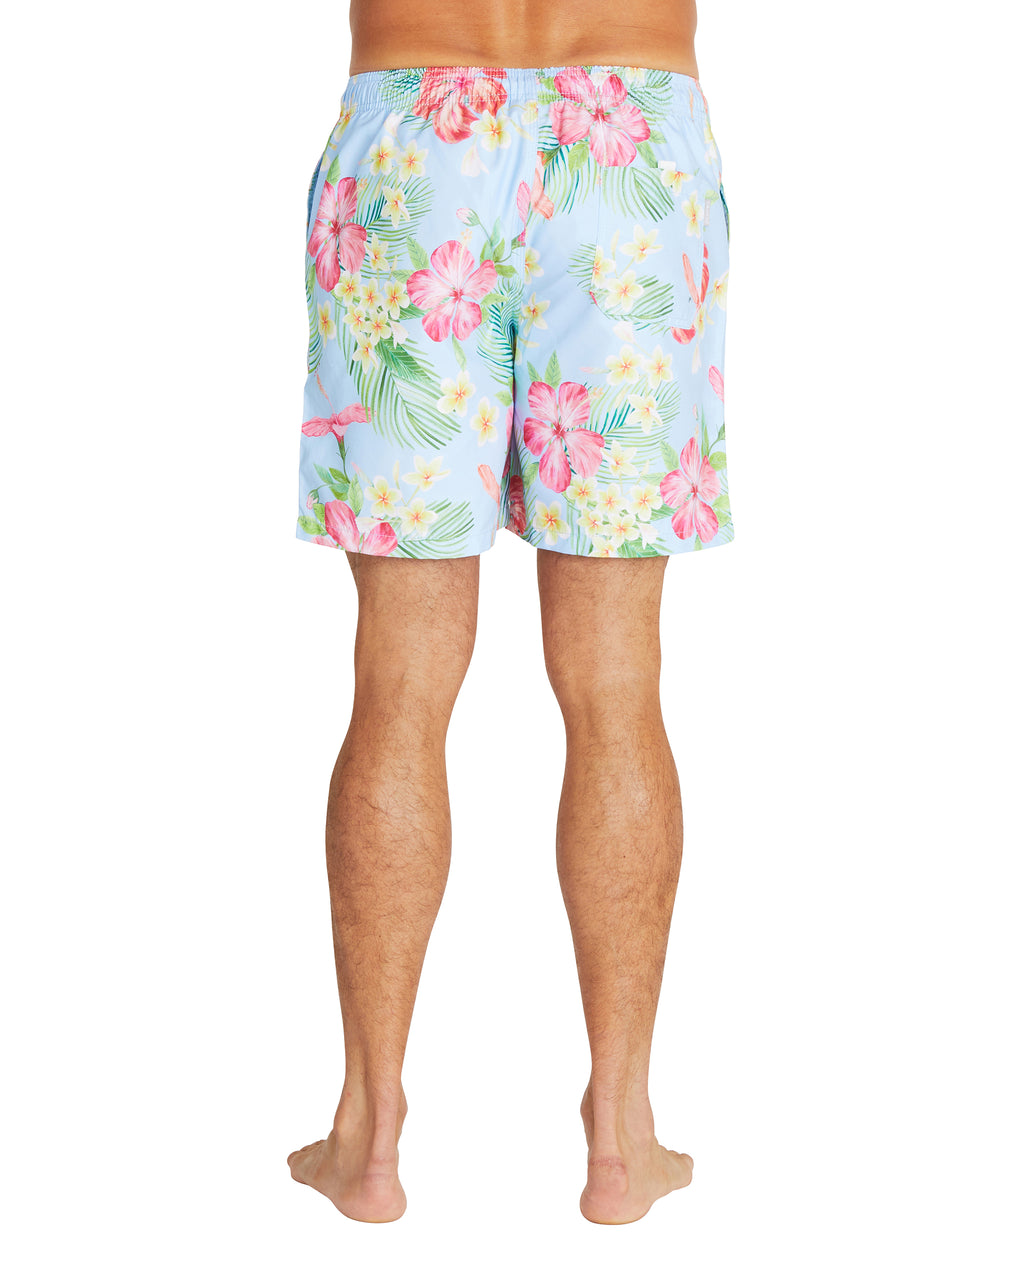 Swim Short - Tropic Shores - Light Blue